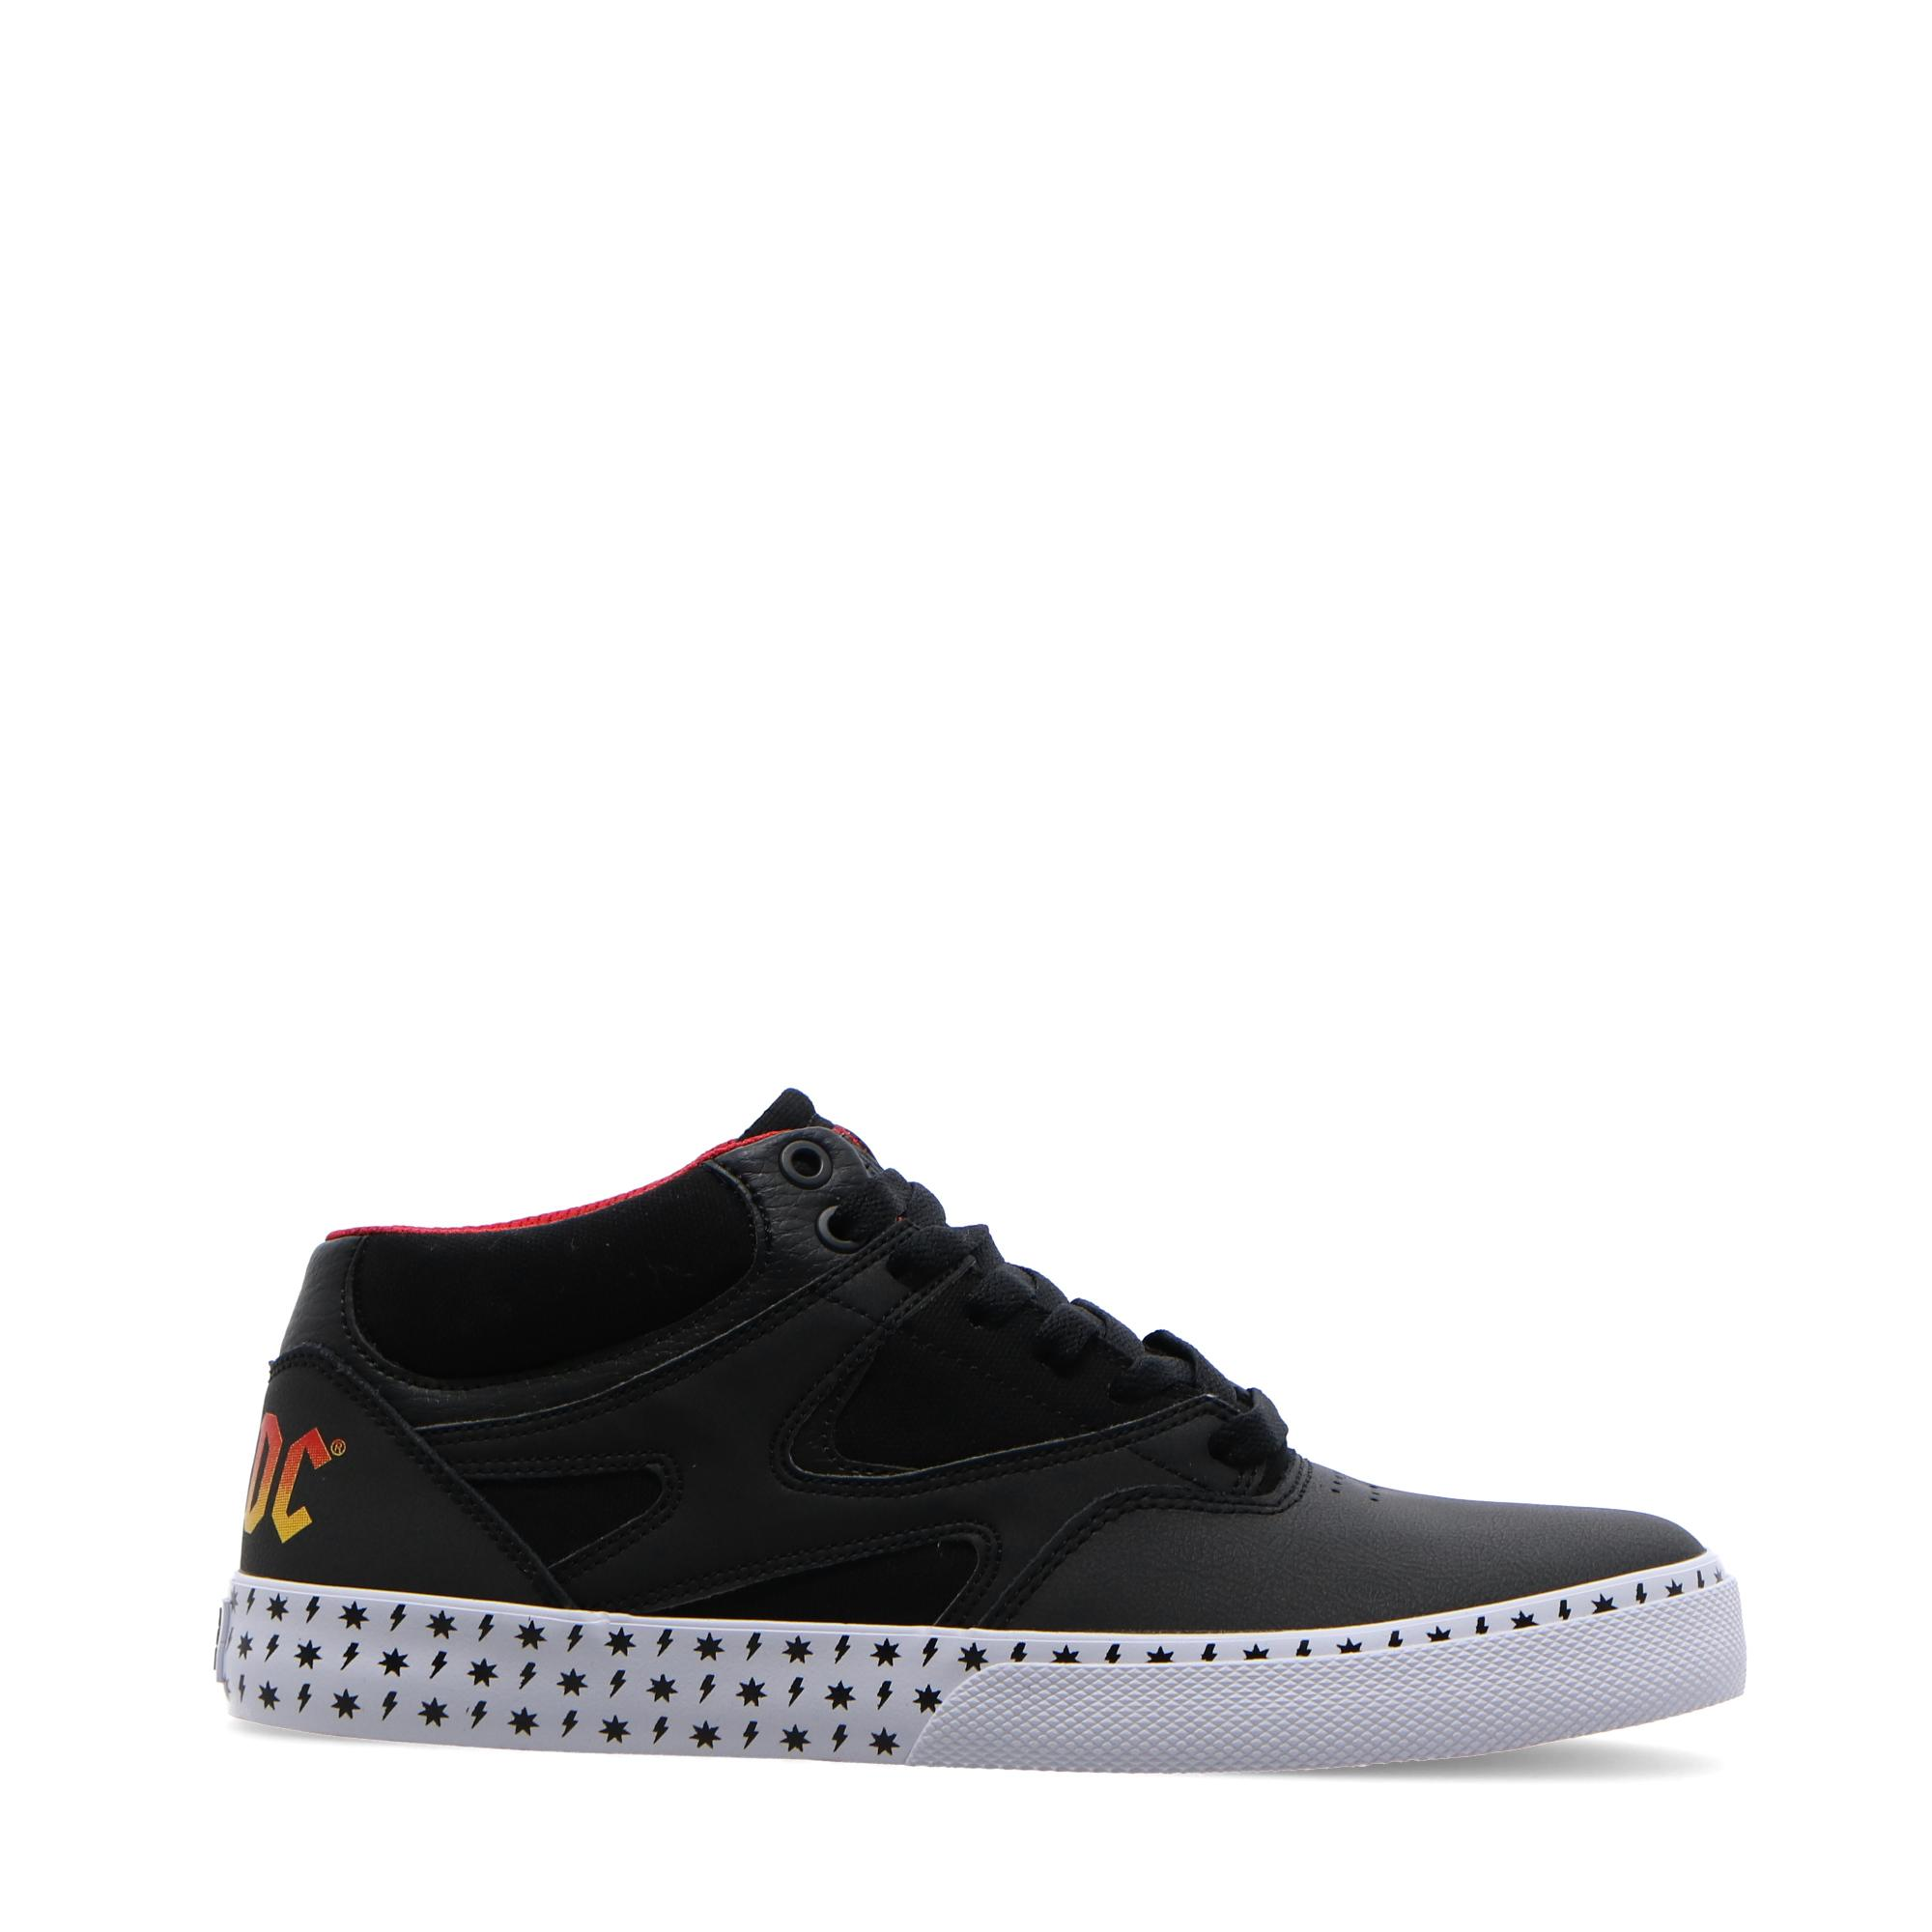 Dc Kalis Vulc Mid Acdc BLACK WHITE RED